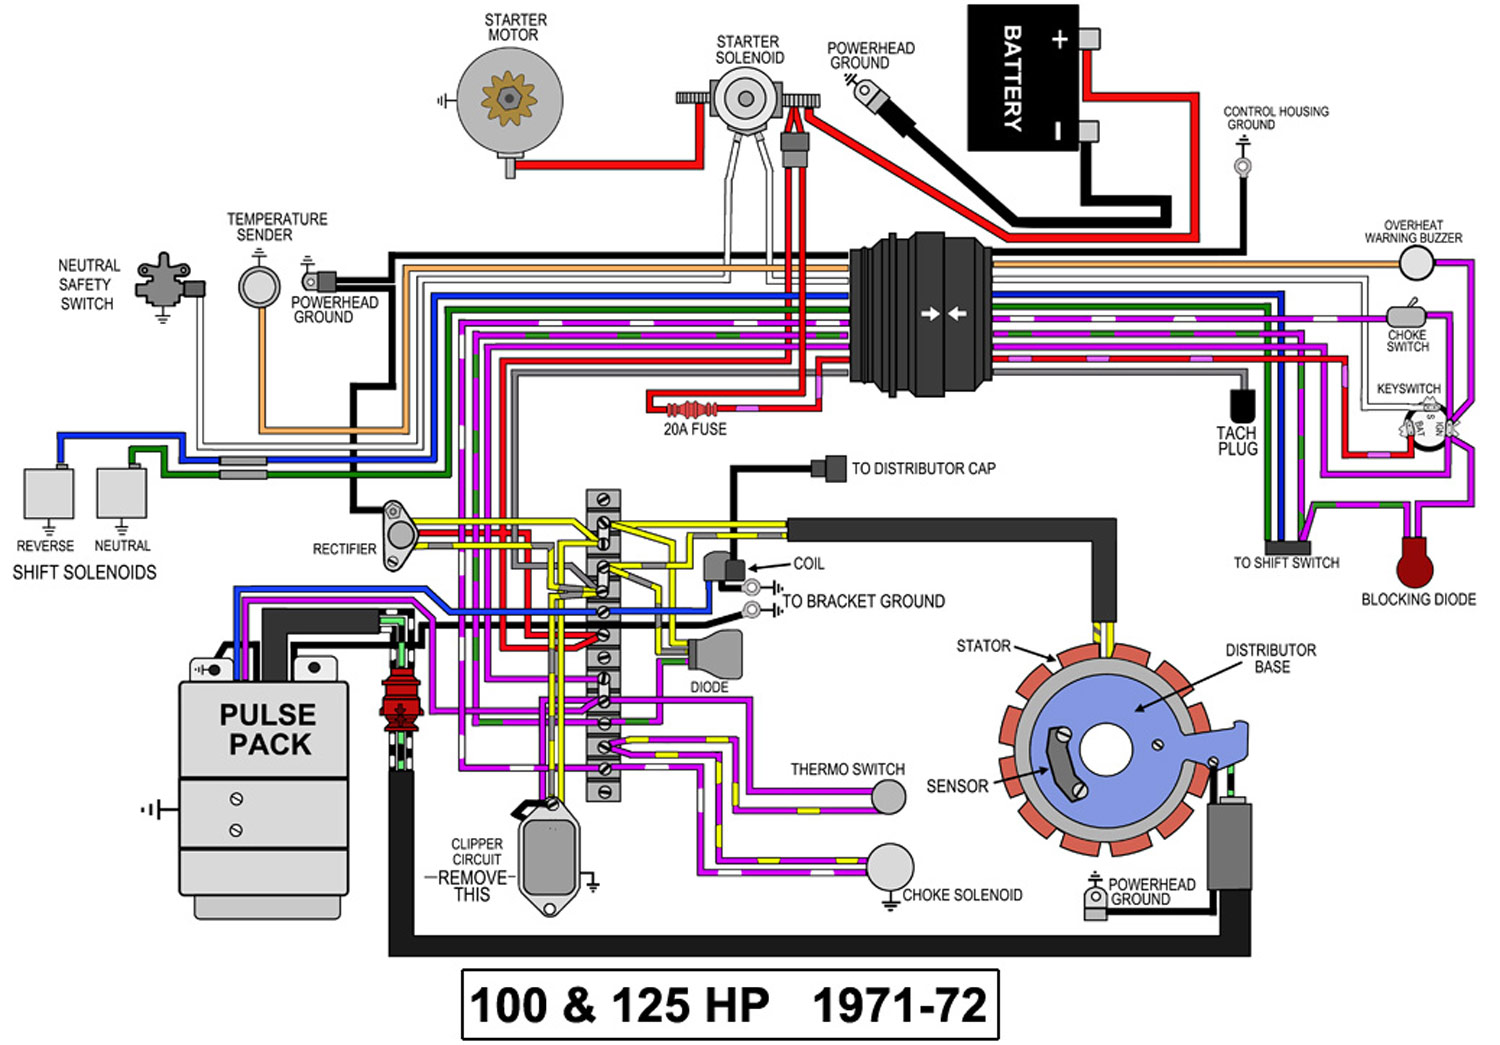 1998 Mercury 150 Wiring Diagram Modern Design Of 2005 50 Hp 2 Stroke Library Rh 3 Skriptoase De 95